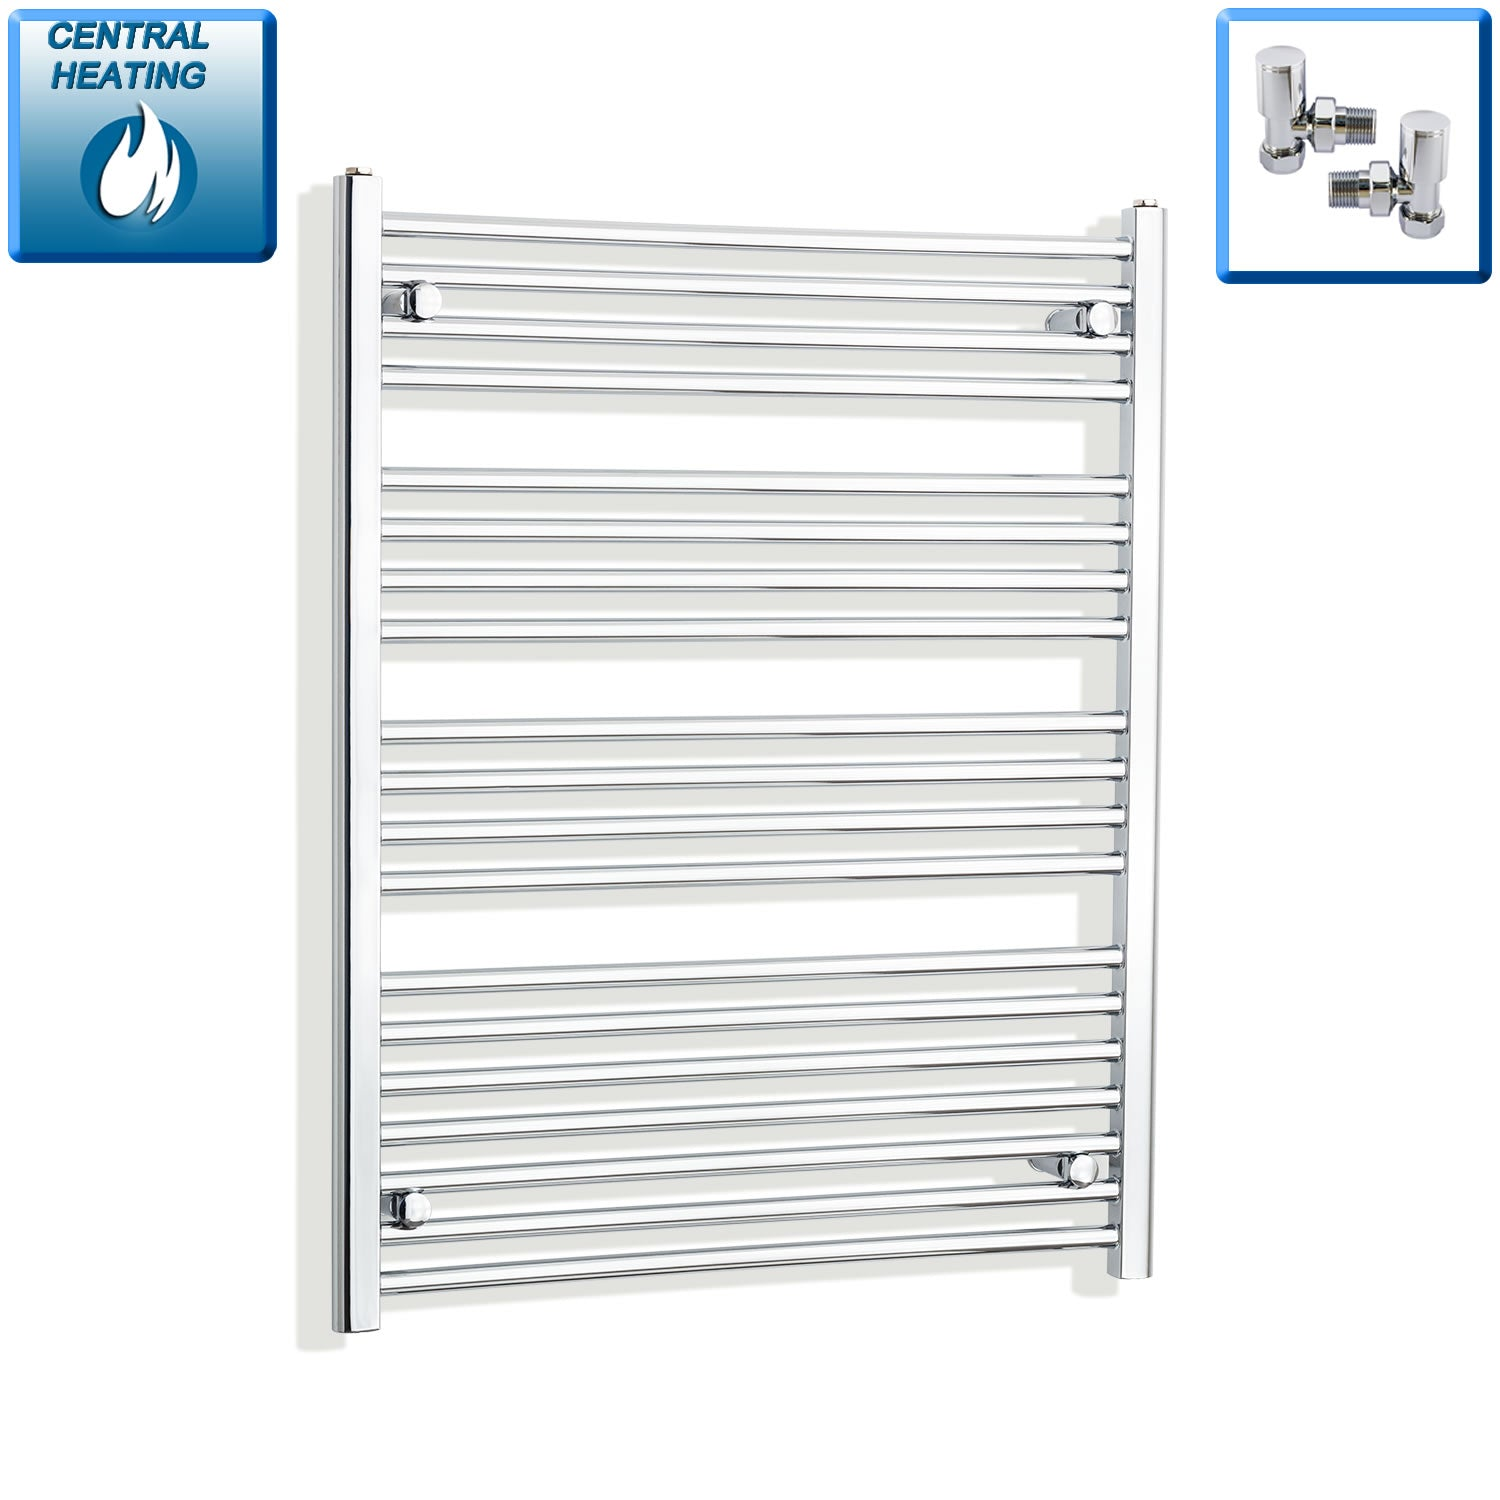 750mm Wide 1000mm High Flat Chrome Heated Towel Rail Radiator HTR,With Angled Valve